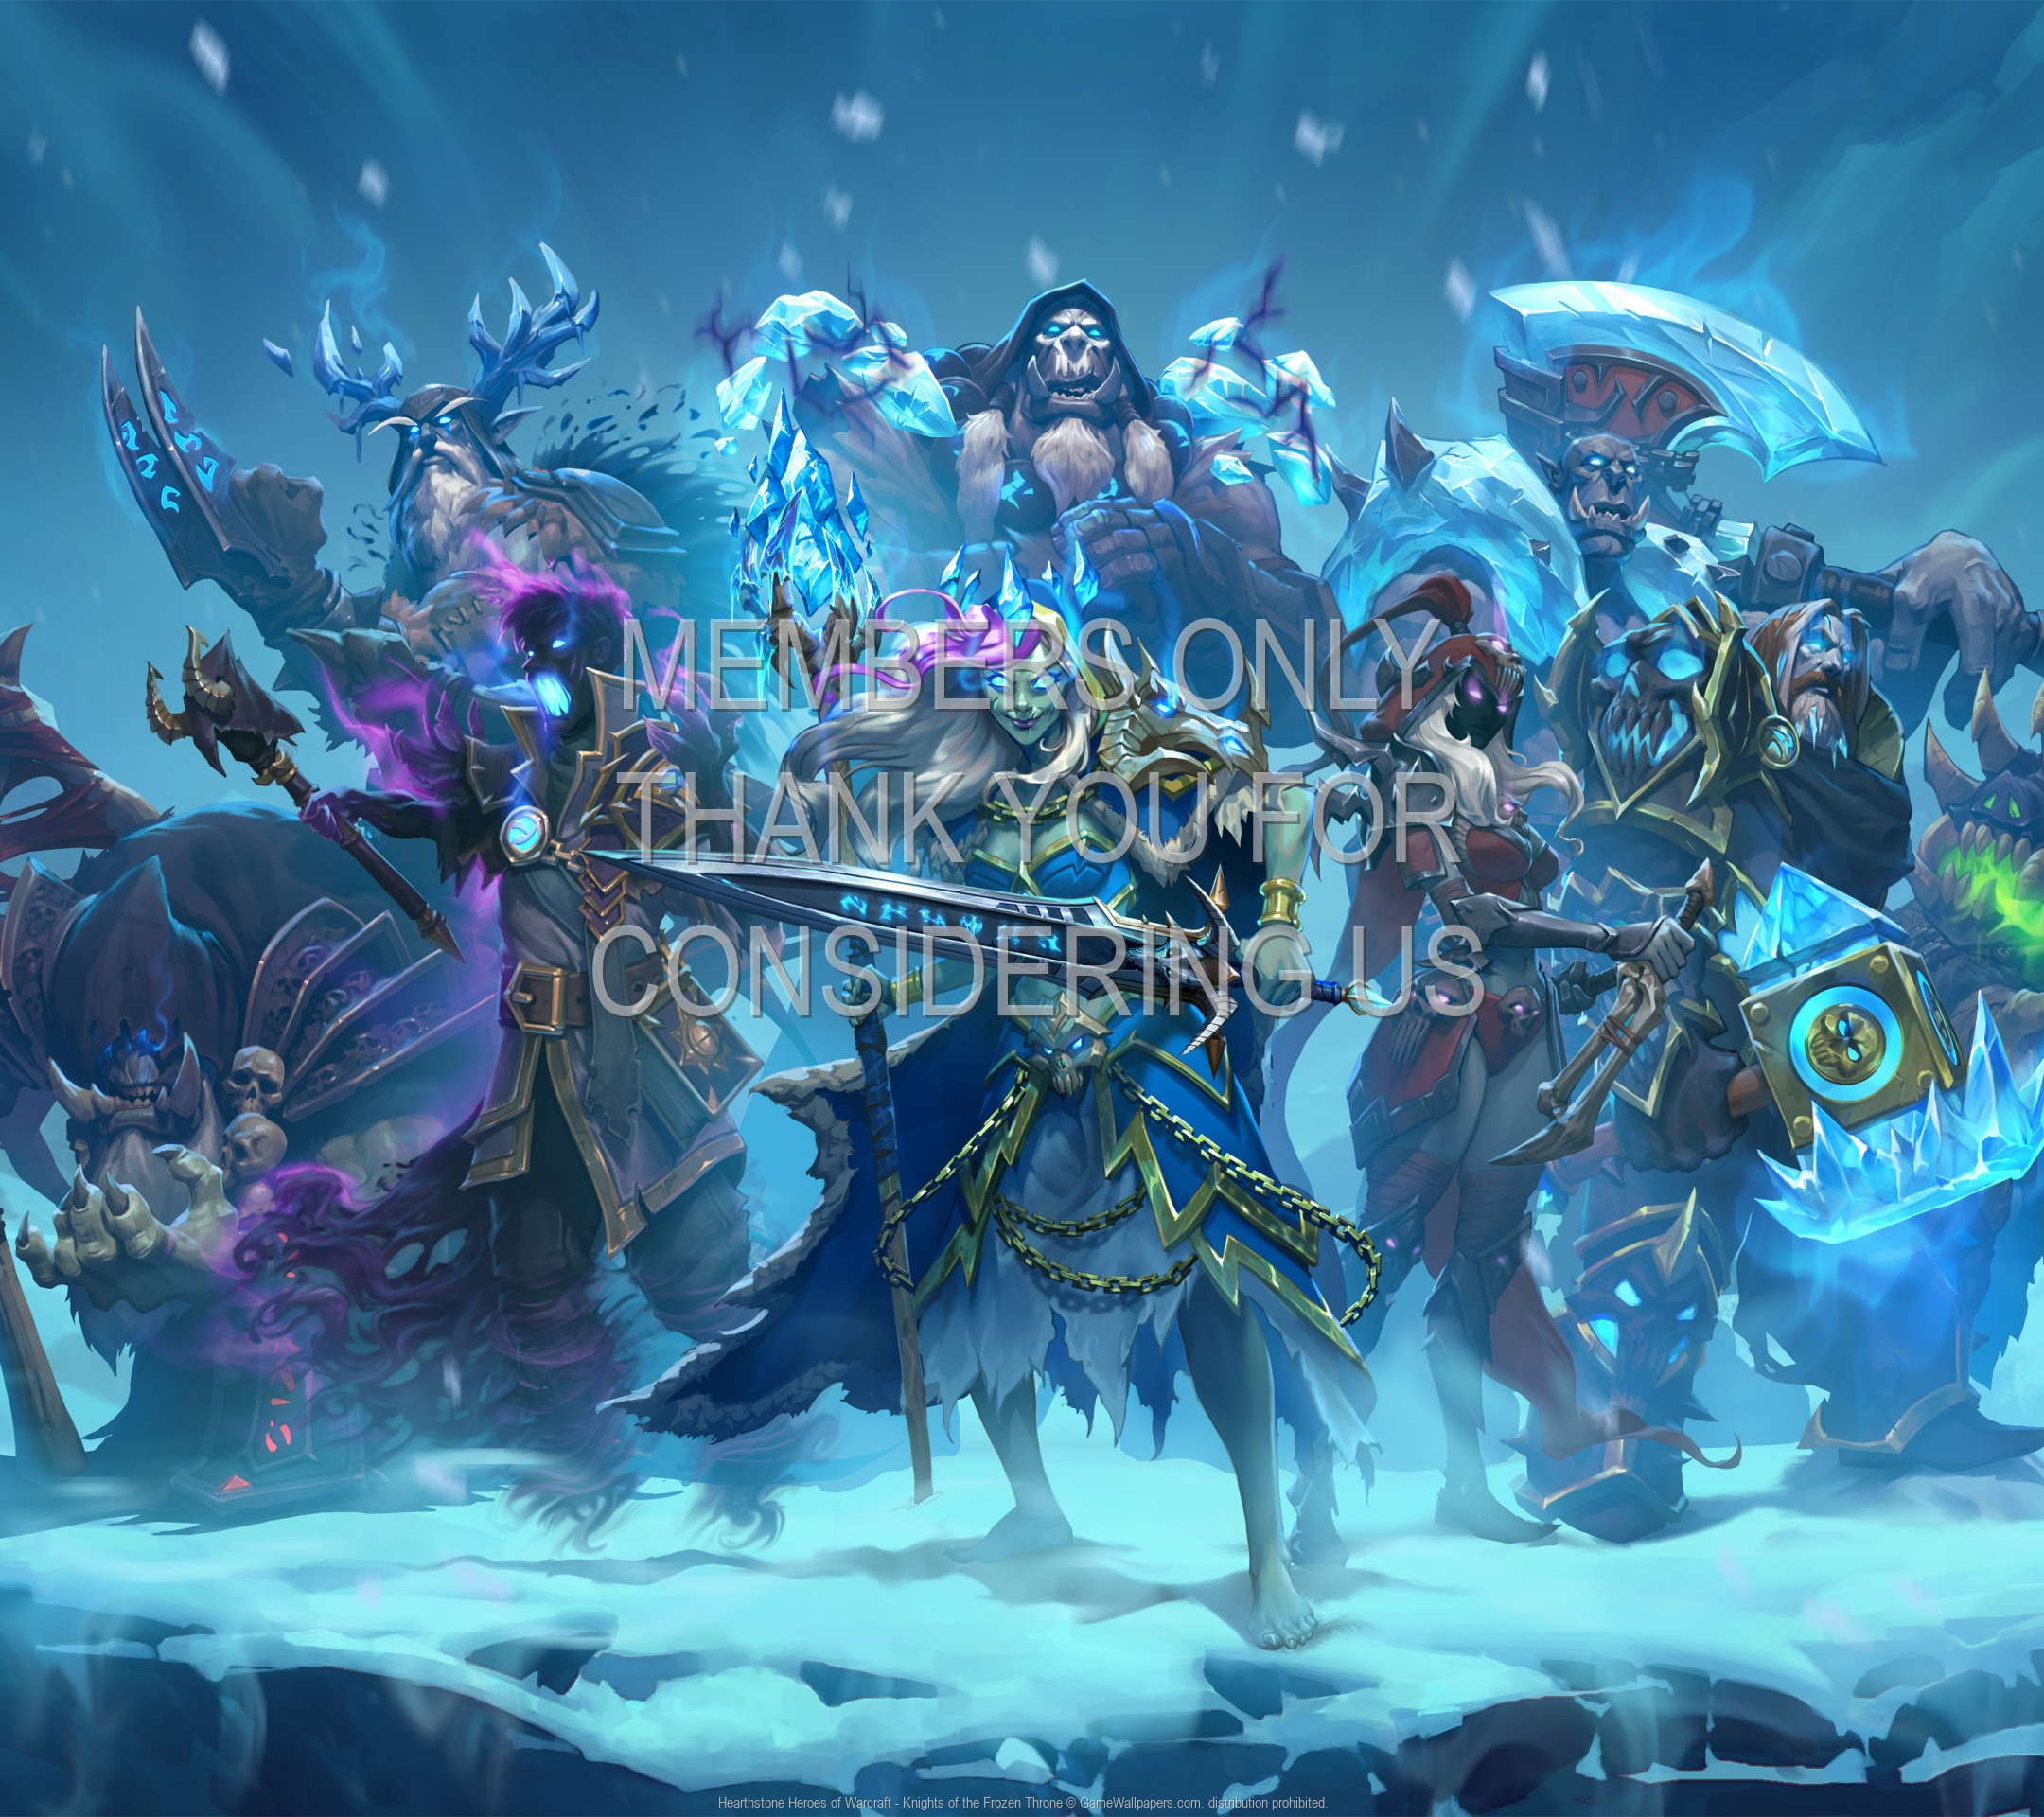 Hearthstone: Heroes of Warcraft - Knights of the Frozen Throne 1920x1080 Mobile wallpaper or background 02